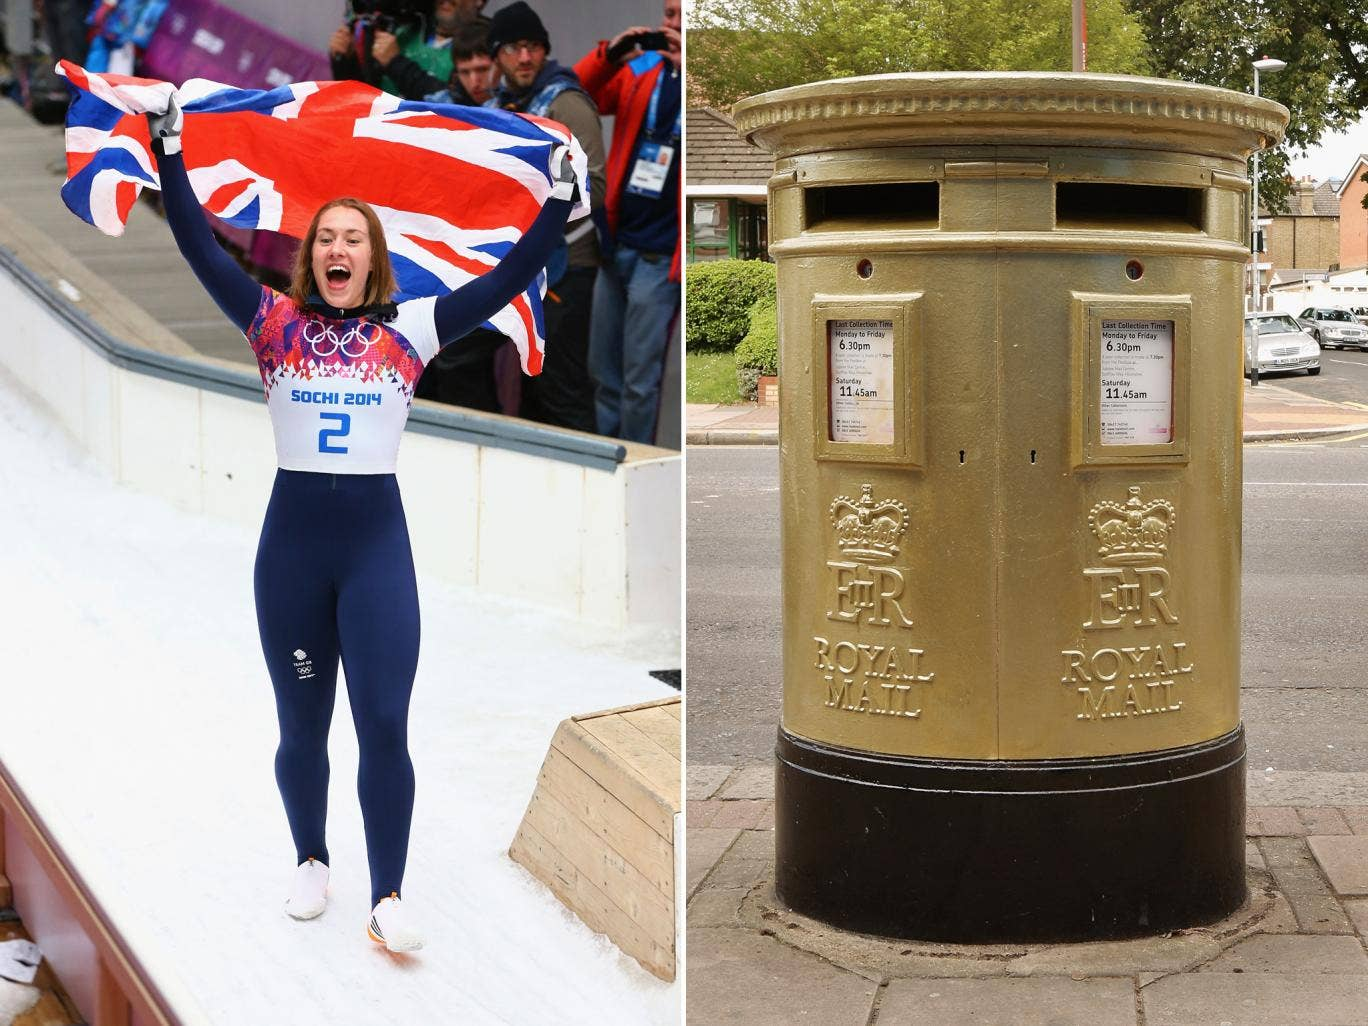 Royal Mail have rejected talk of dedicating a postbox in Sevenoaks to Lizzy Yarnold for her Sochi skeleton gold medal